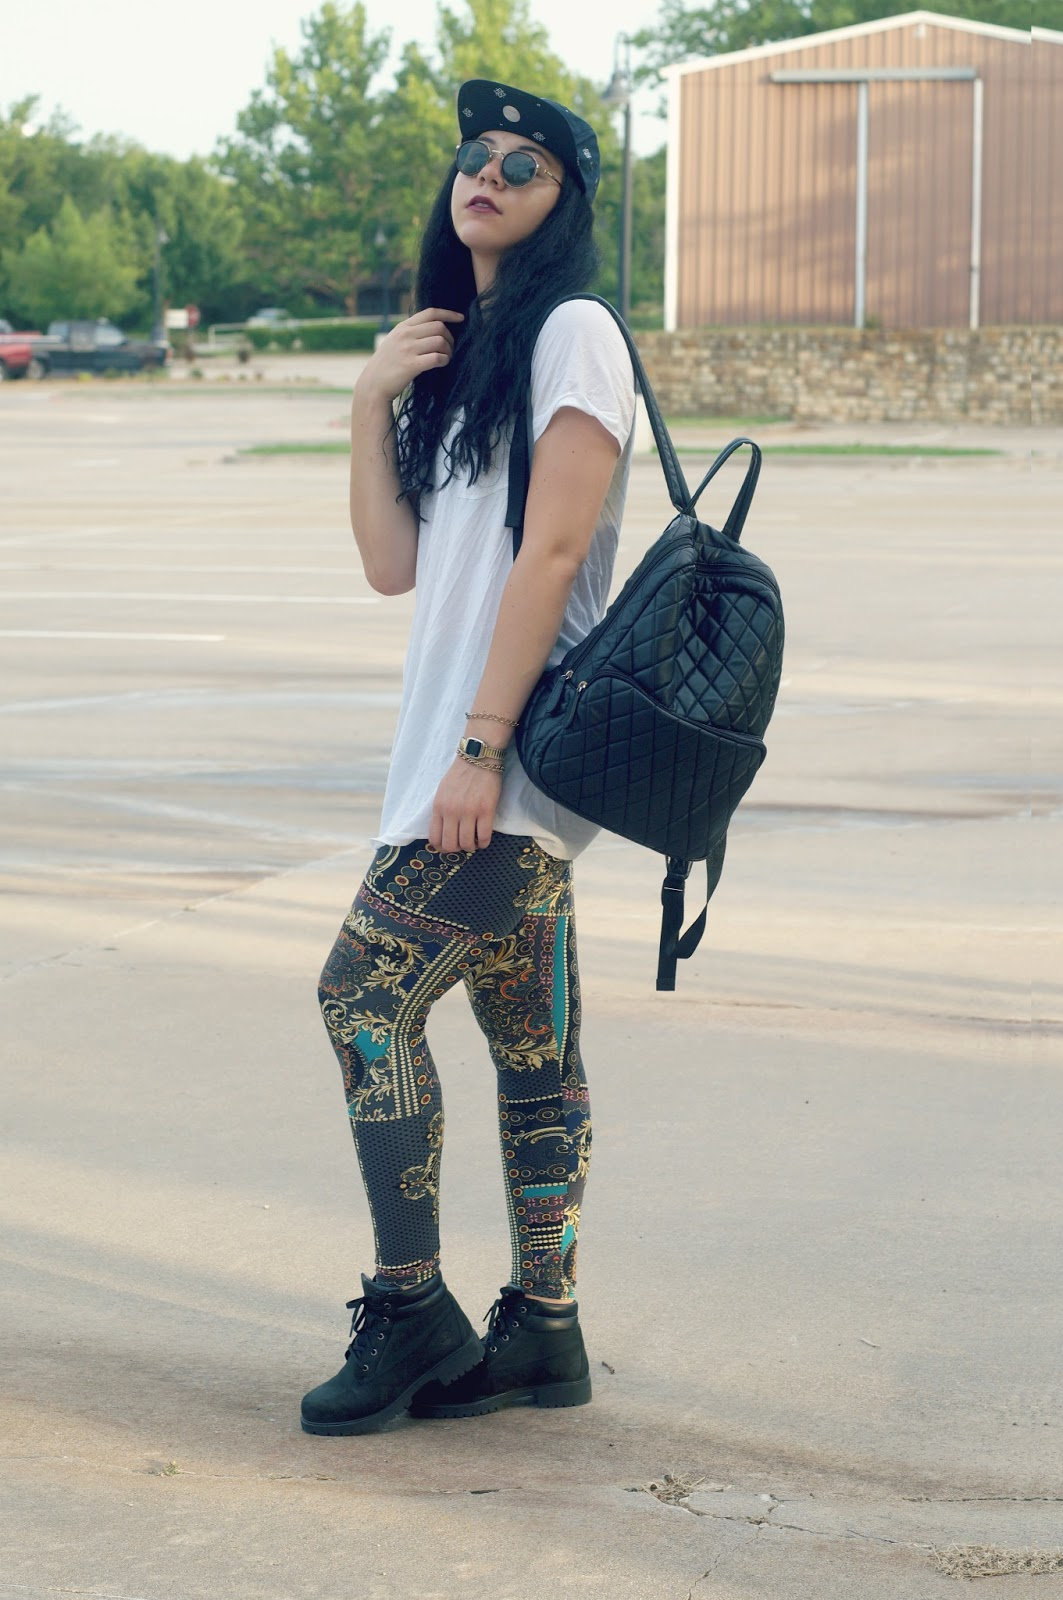 Tumblr Swag Girls Outfits | www.pixshark.com - Images Galleries With A Bite!